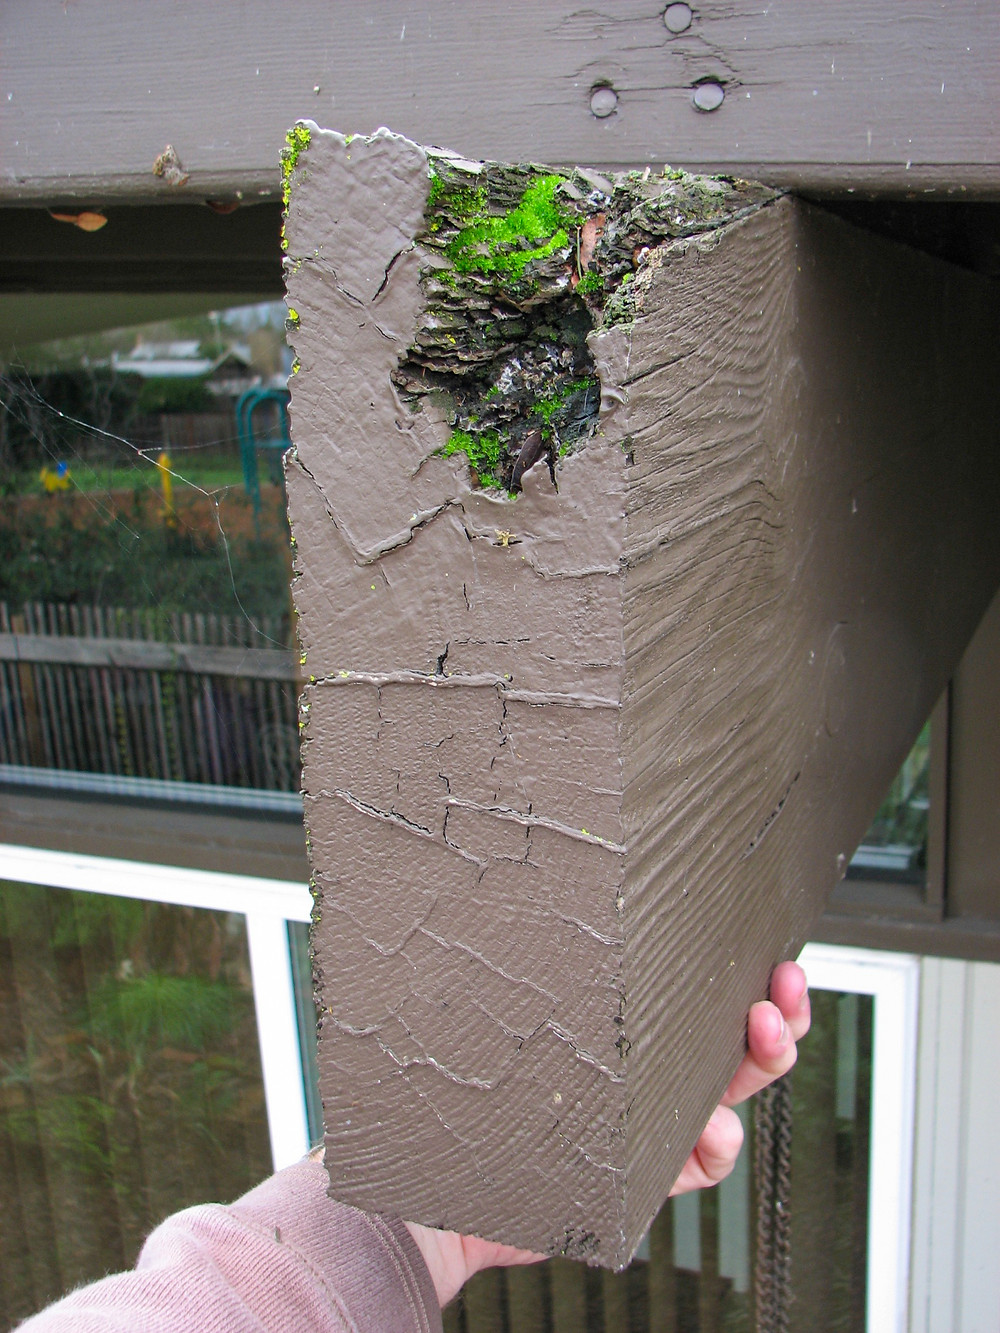 Dry rot eaten beam with moss growing inside